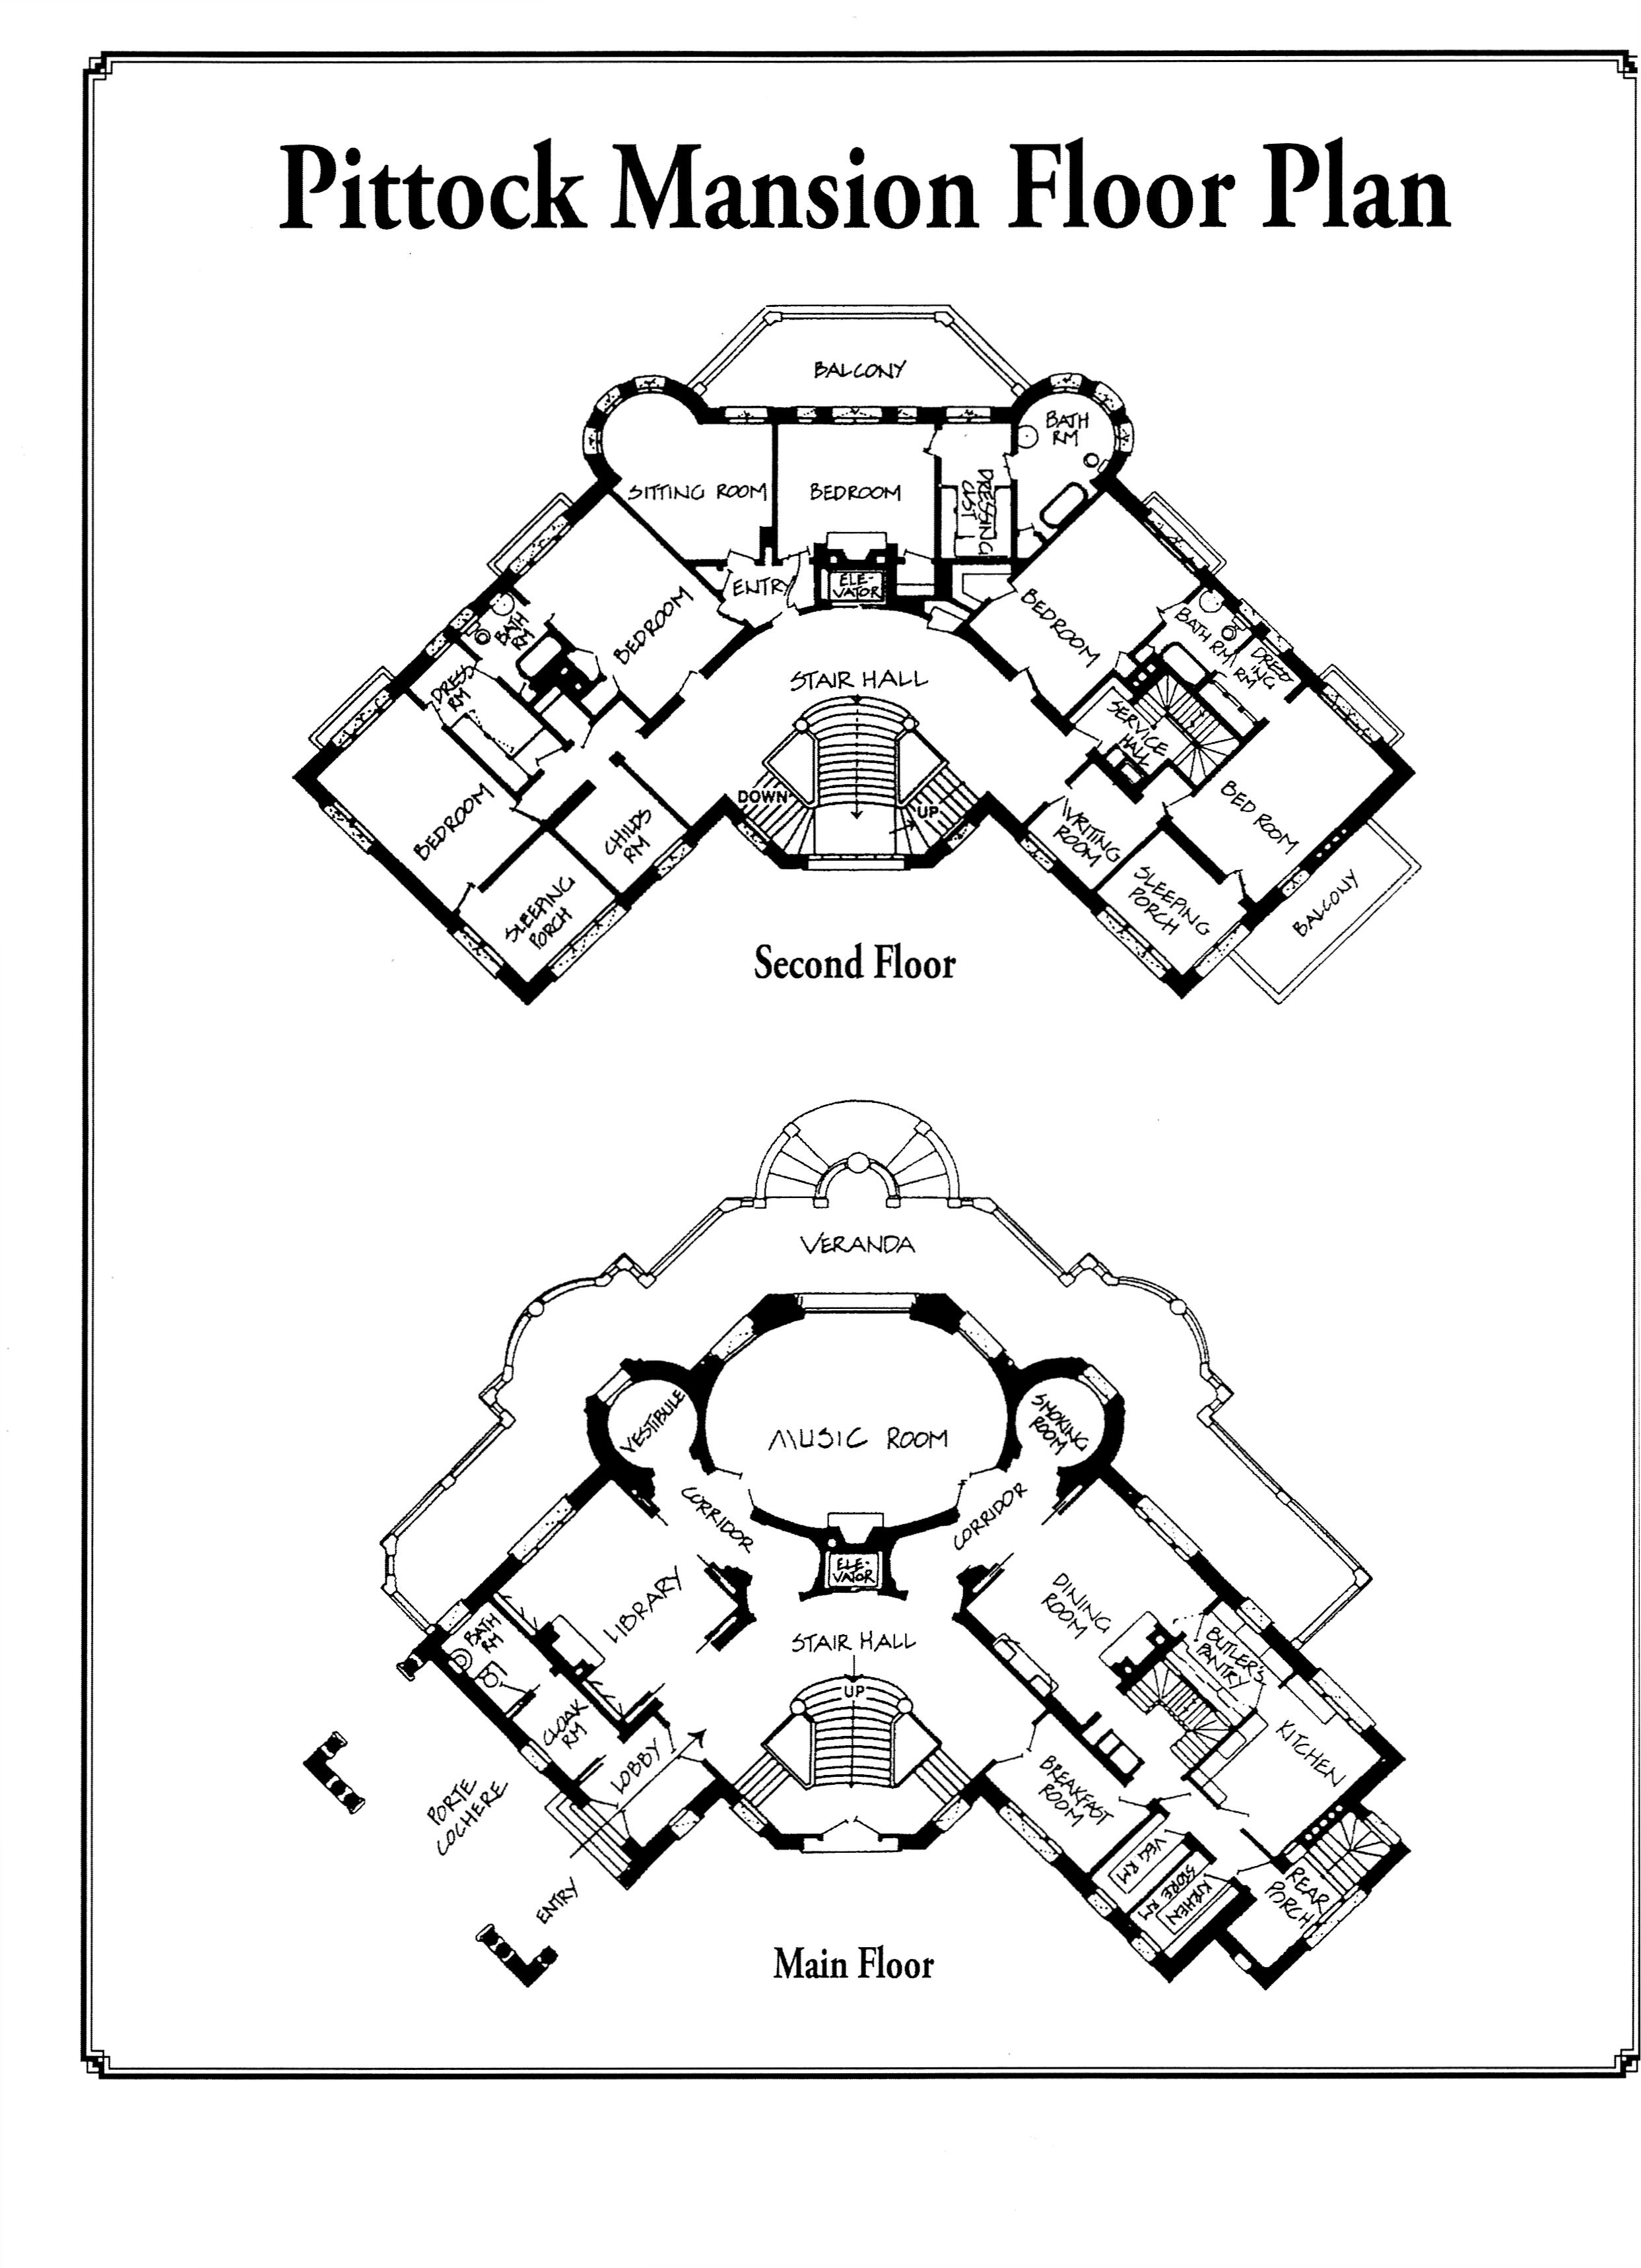 Pittock Mansion Floor Plan 1 Fixed Points